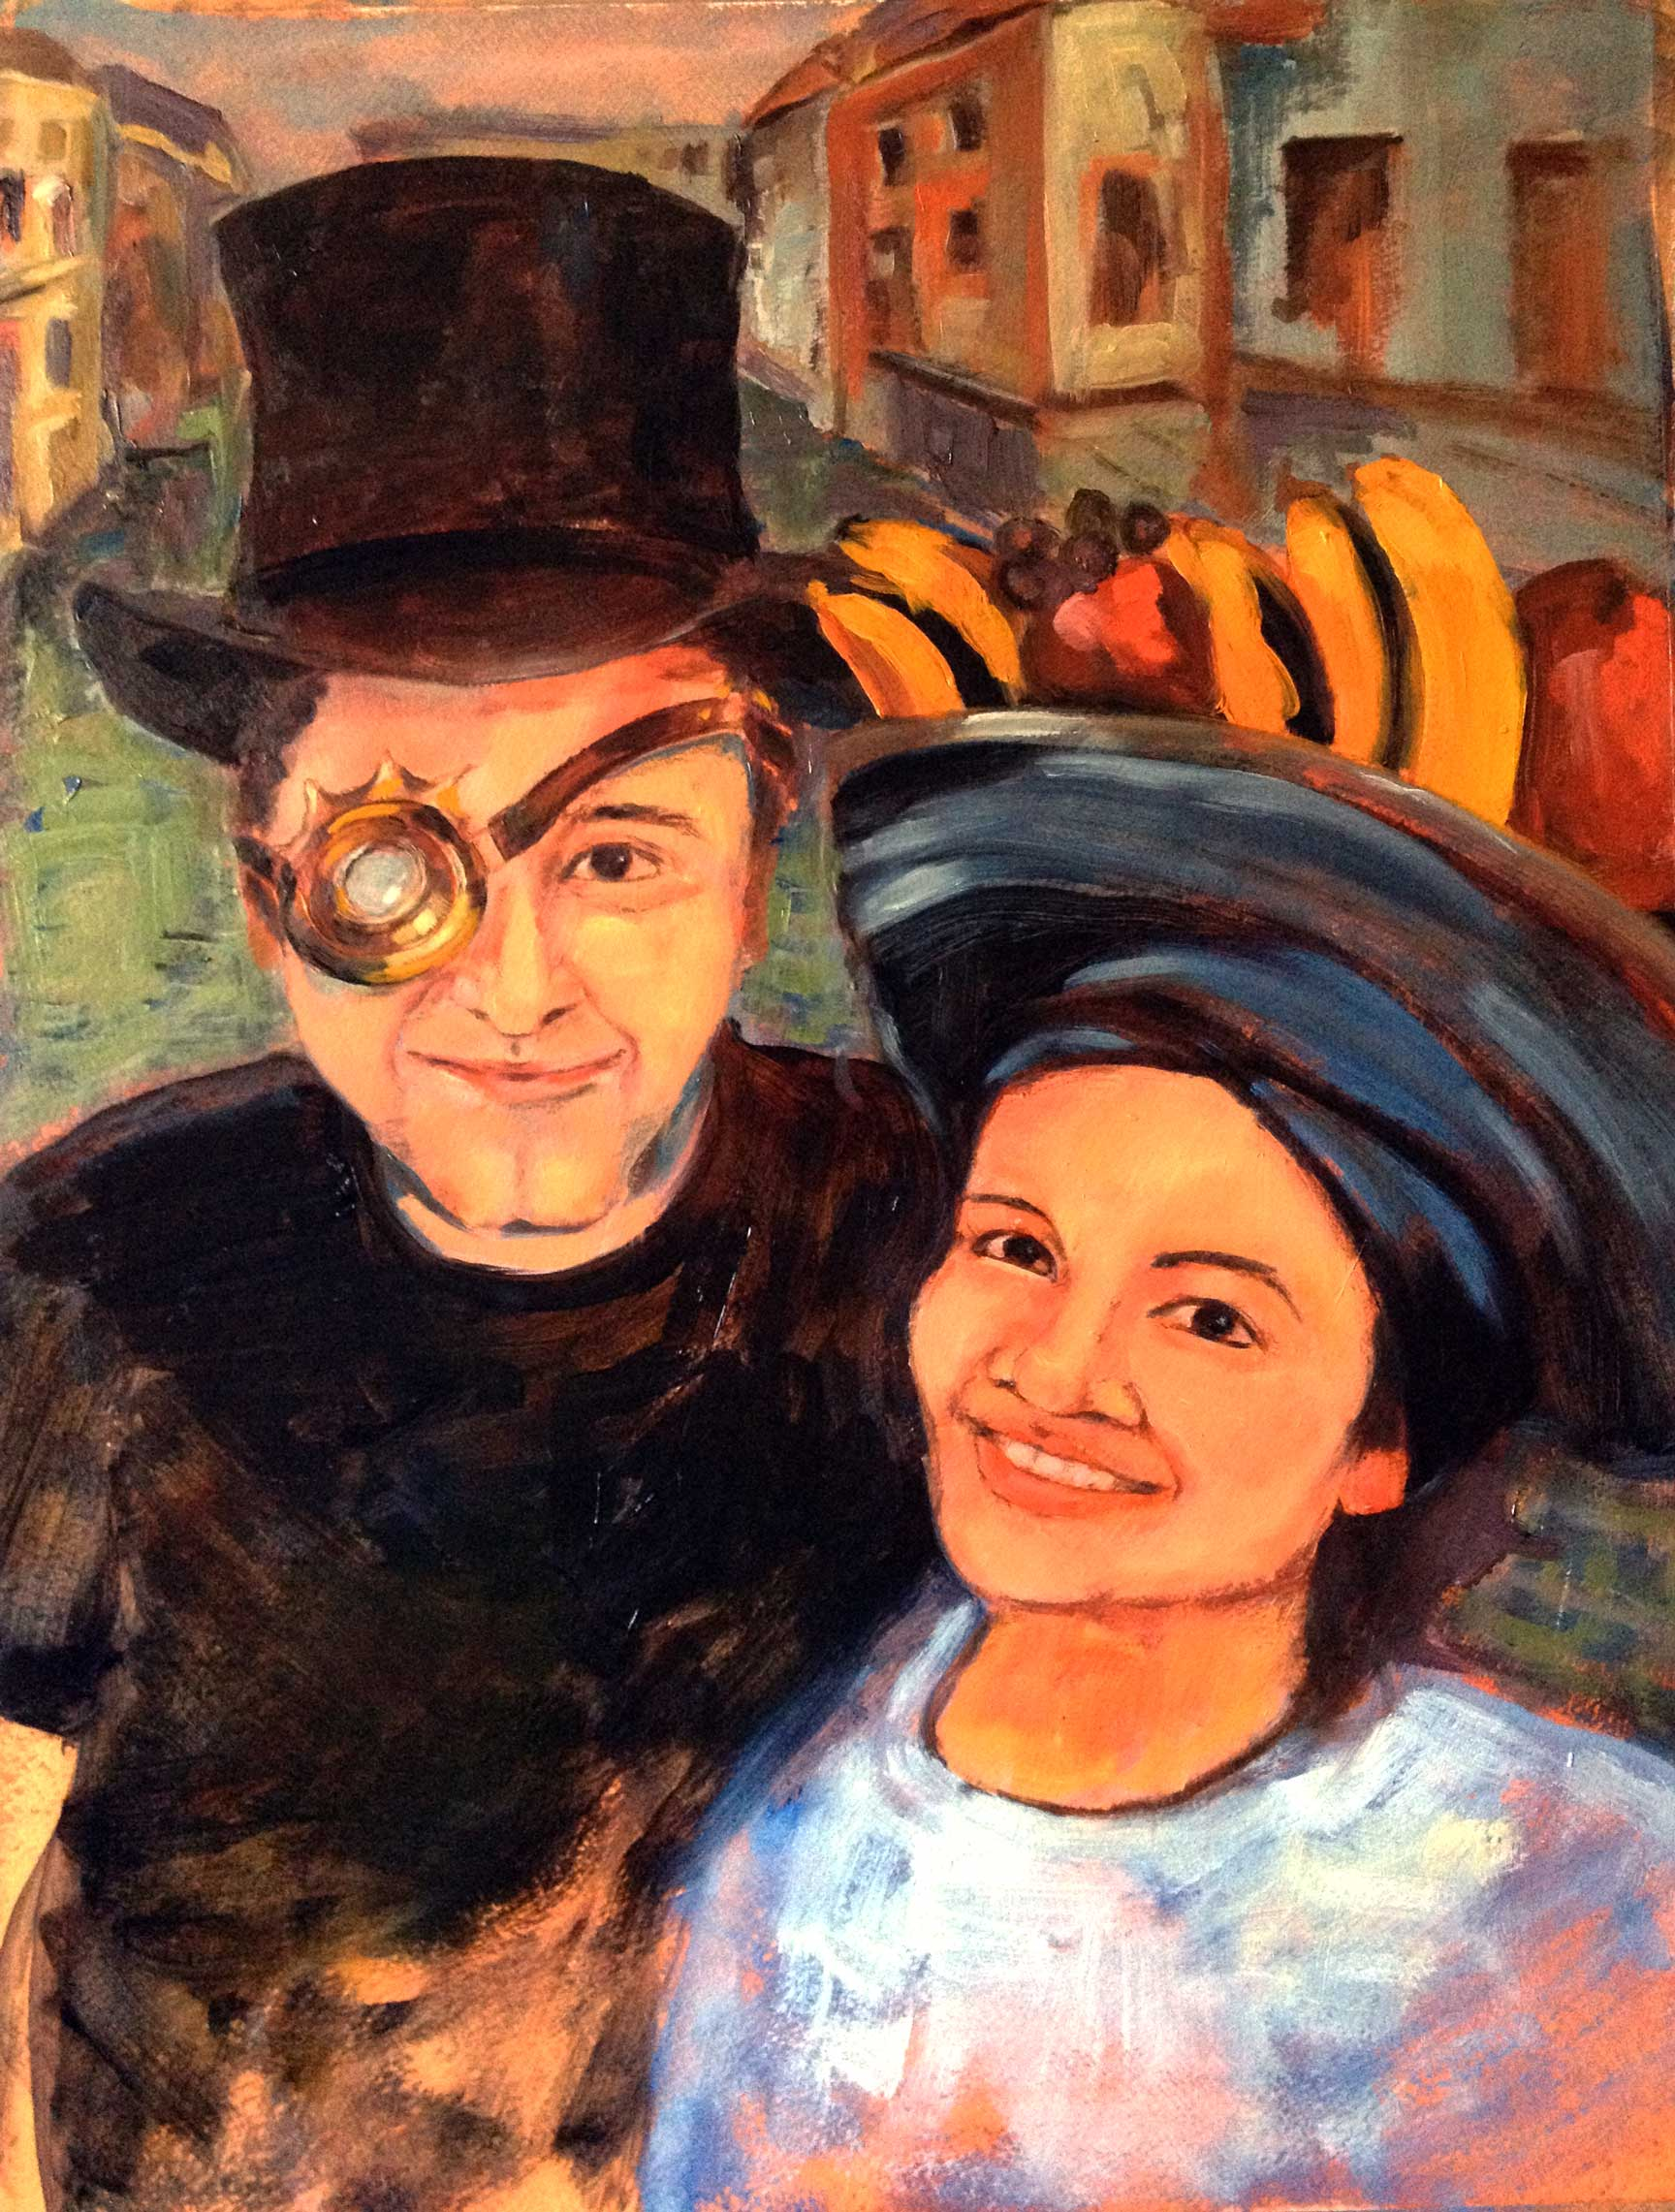 Chris and Pattra. This was a wedding gift for a marvelous couple. Elements of Venice, the 19th century, and Brazilian pop icons were all incorporated into this gem!